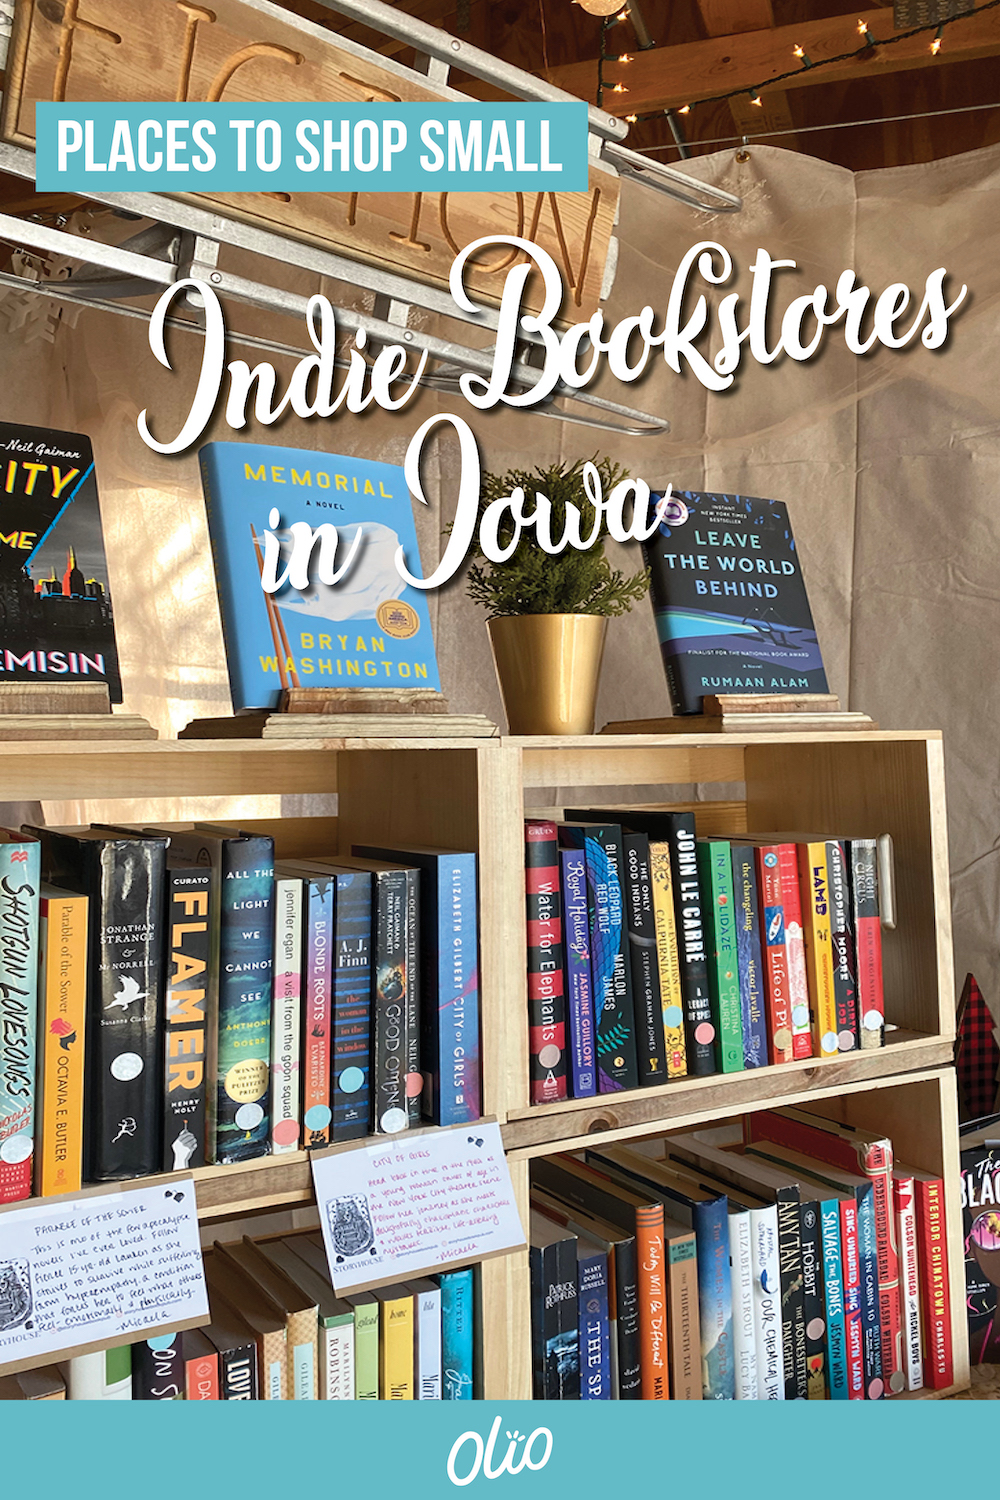 Looking for your next read? Shop small by support one of these independent bookstores in Iowa! These cozy shops have books for readers of all ages and can be found across the Hawkeye state. #Iowa #Midwest